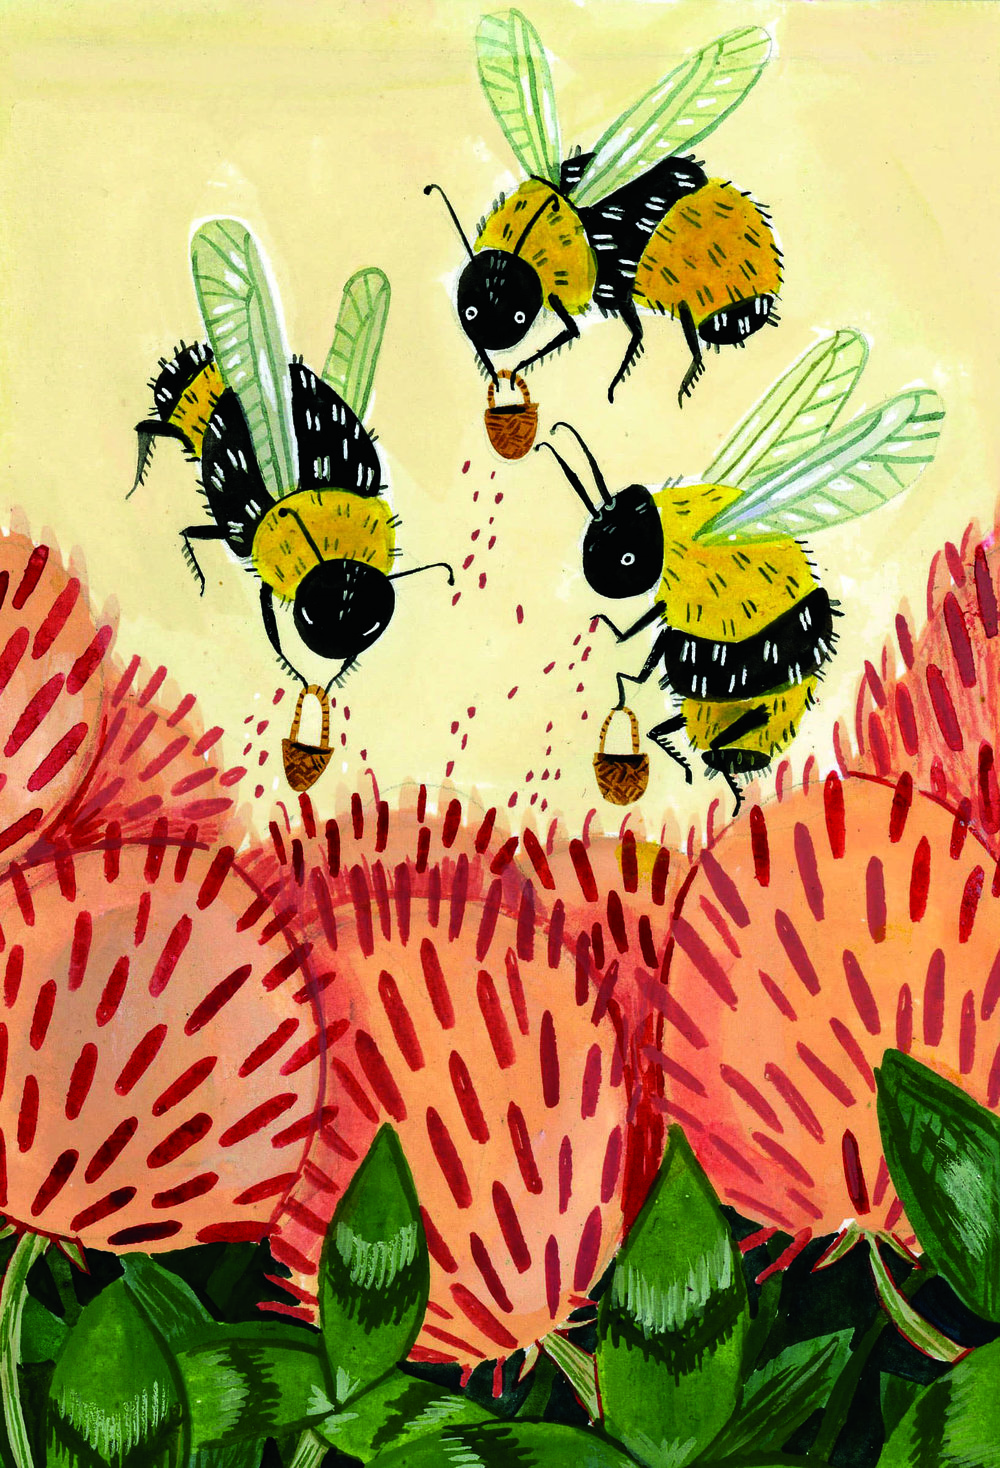 Pollinating Bees with Border